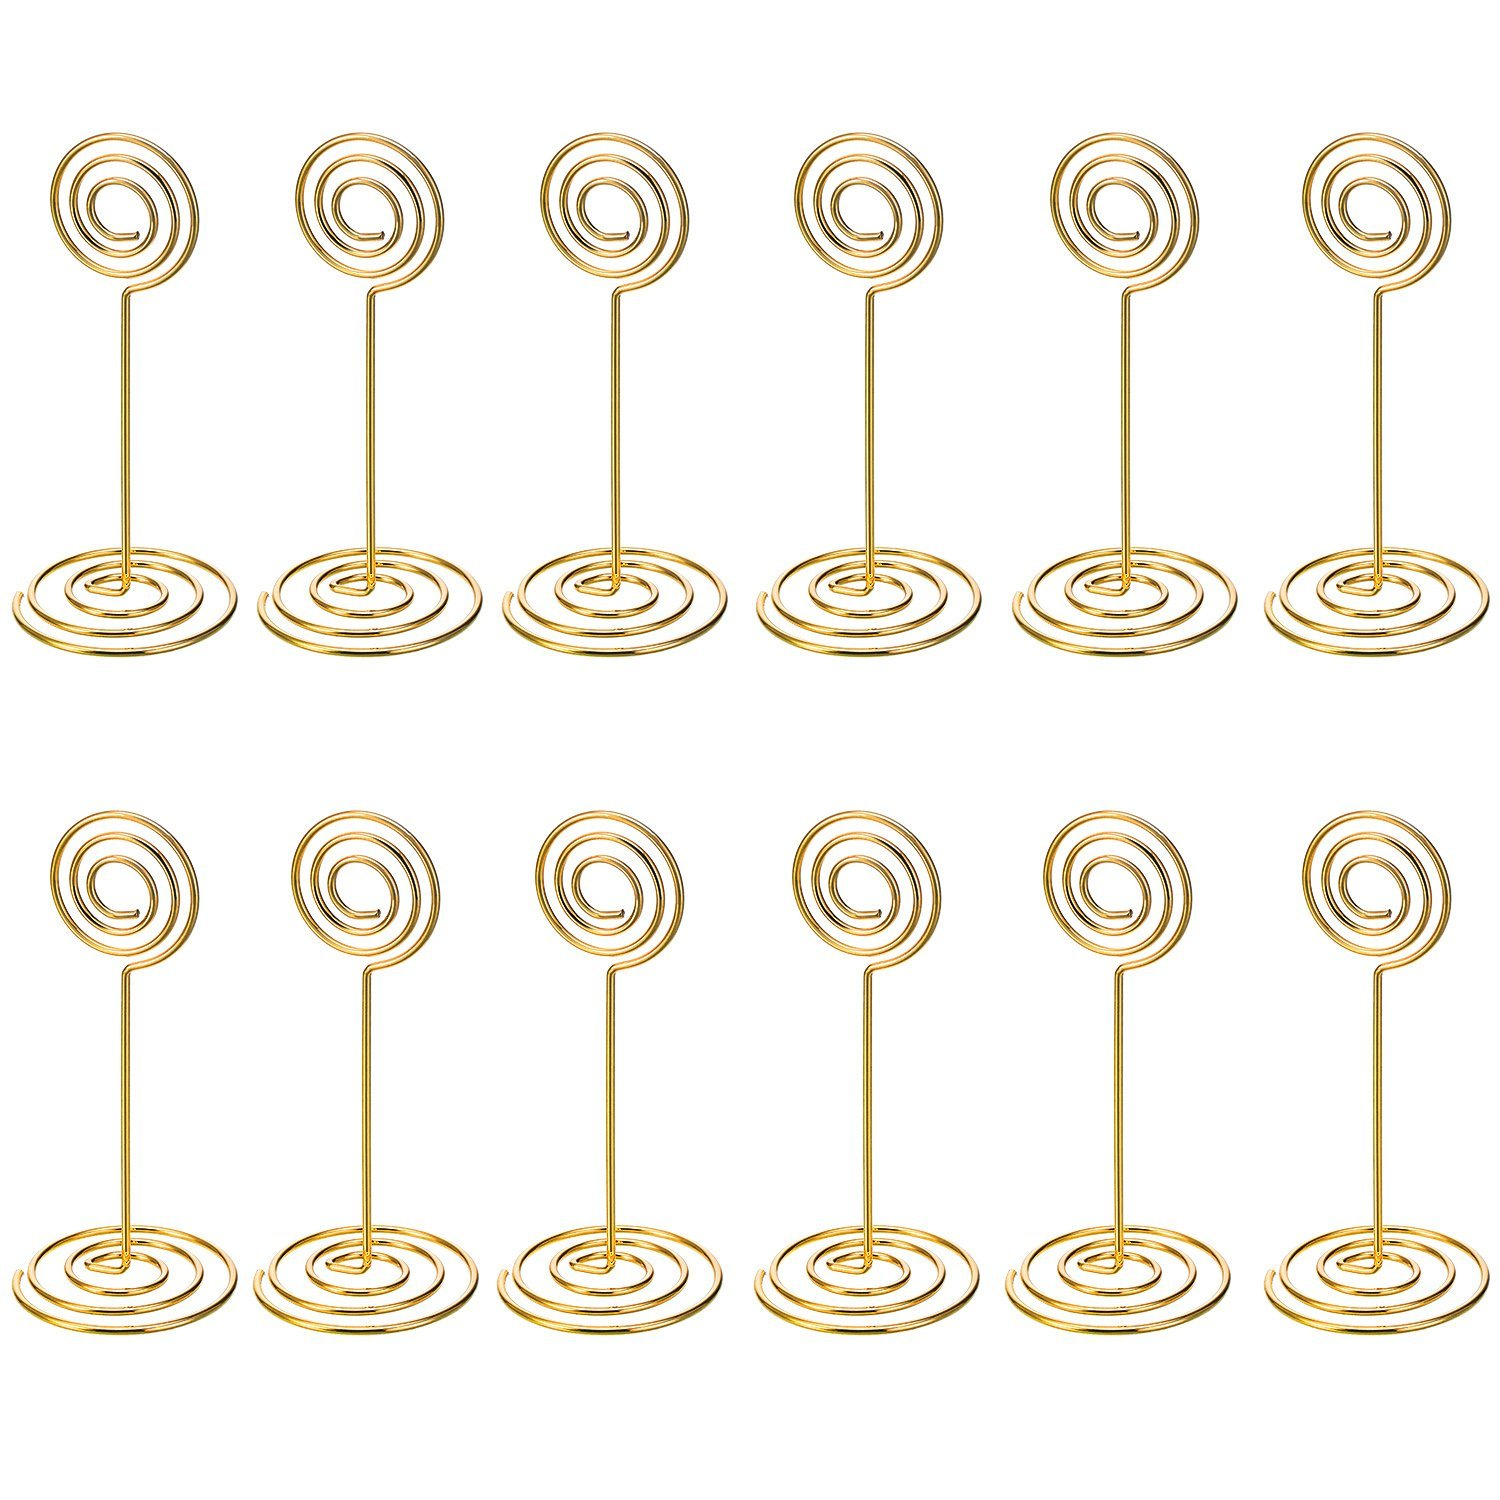 12 Pack Table Number Card Holders Photo Holder Stands Place Paper Menu Clips, Circle Shape (Gold) circle